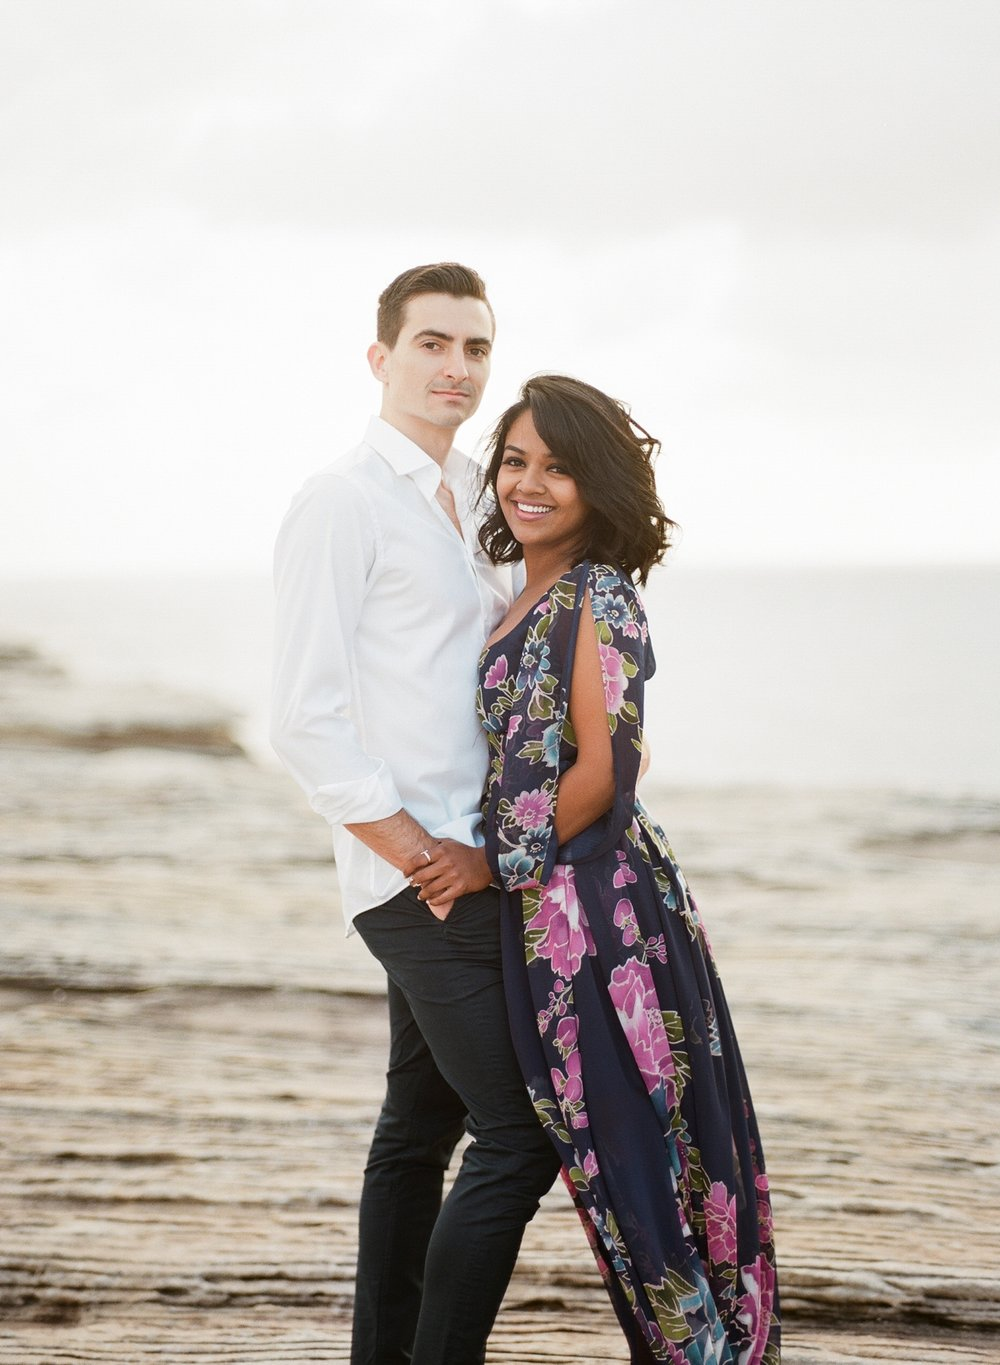 Coastal Sydney couples session by Mr Edwards Photography_0737_1174.jpg